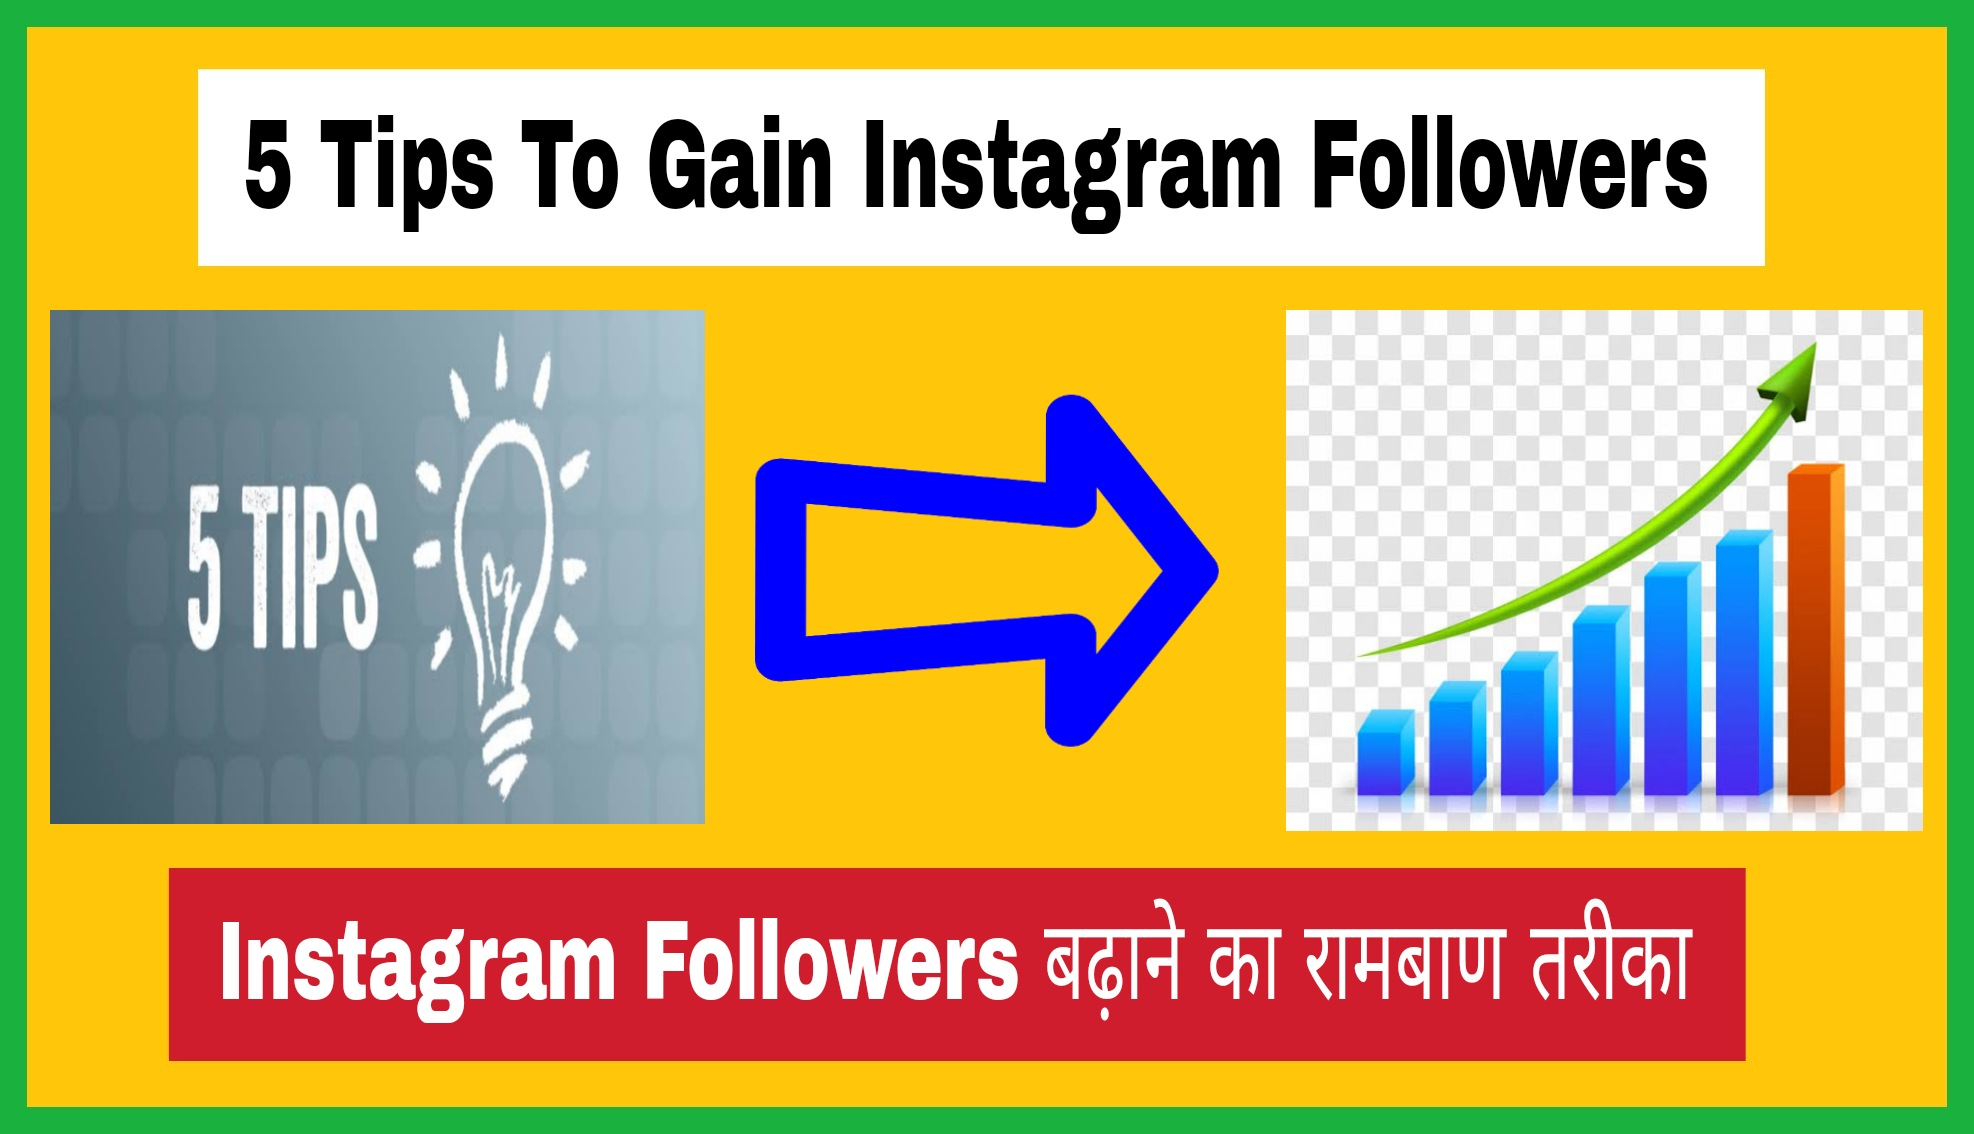 5 Tips To Gain Instagram Followers